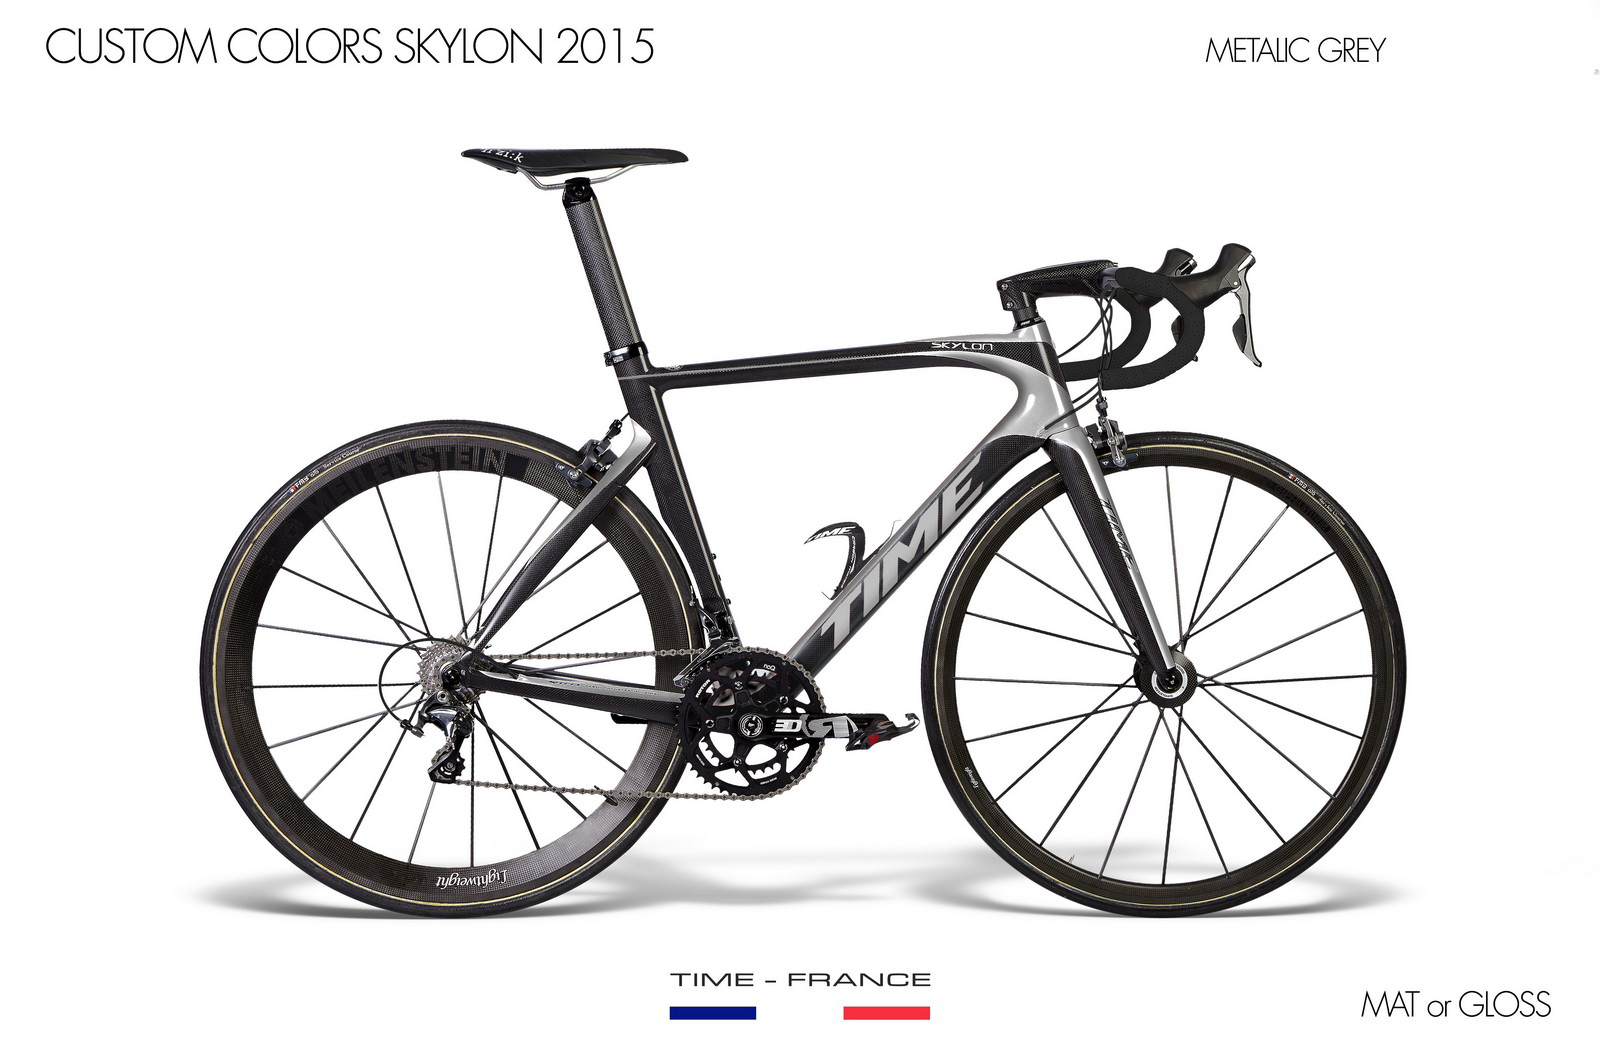 Skylon metalic grey